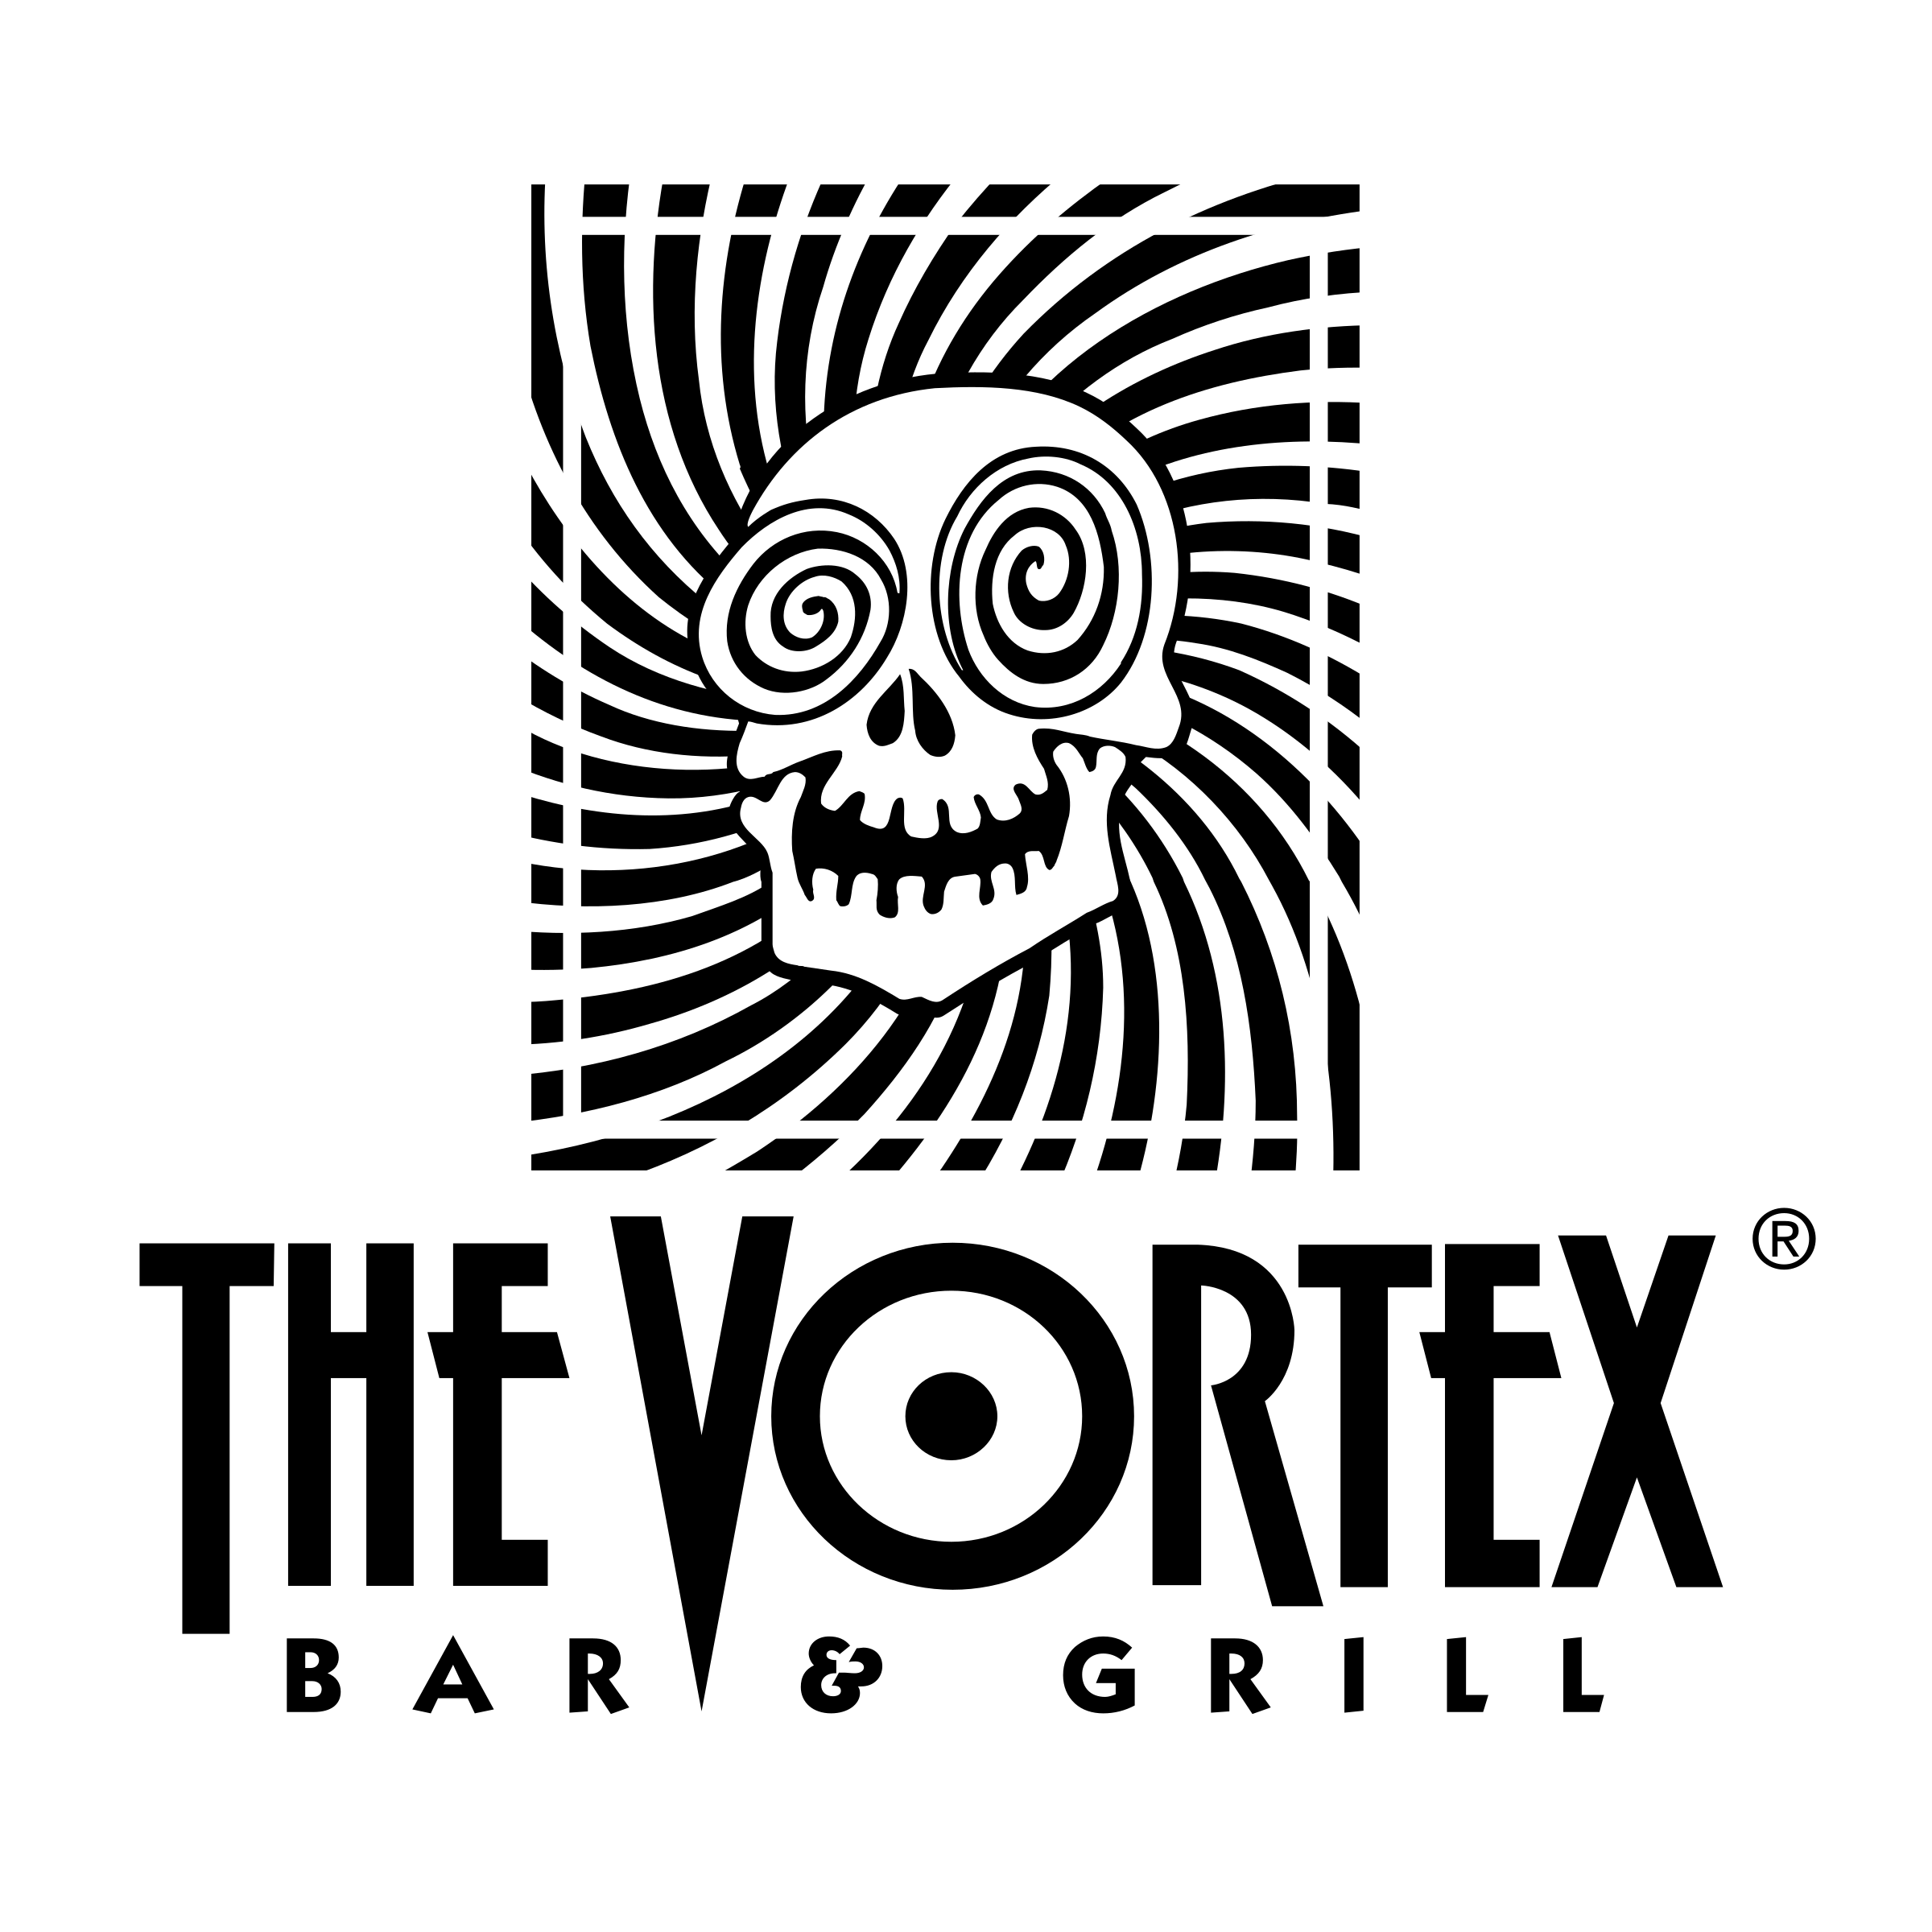 Vortex vector black and white. The logo png transparent